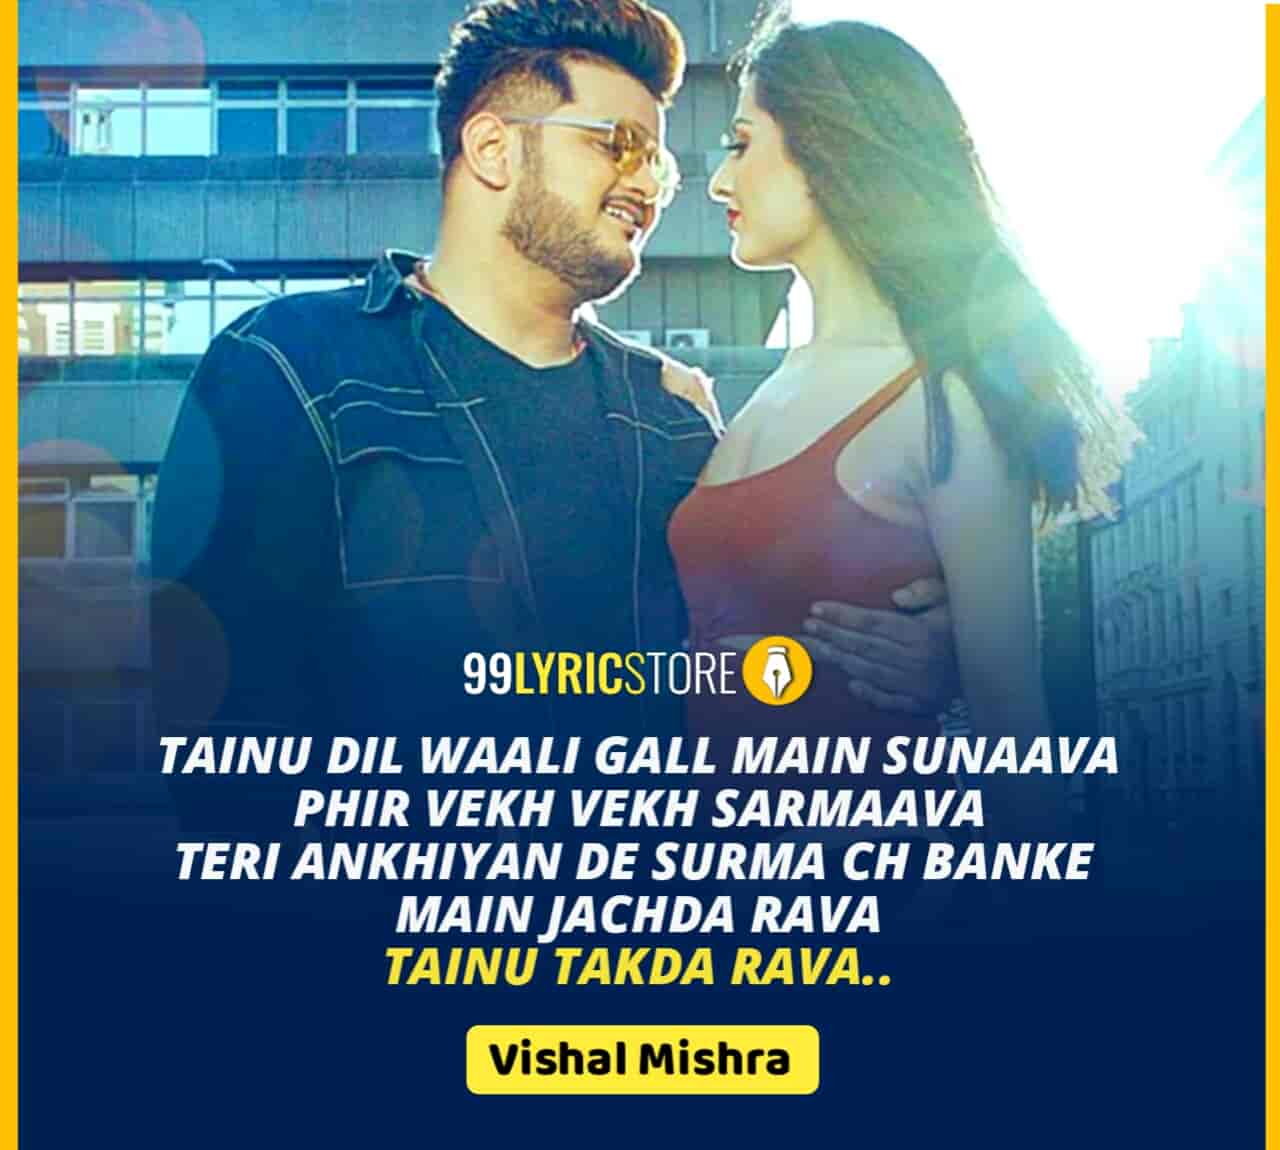 Takda Rava Love song sung by Vishal Mishra